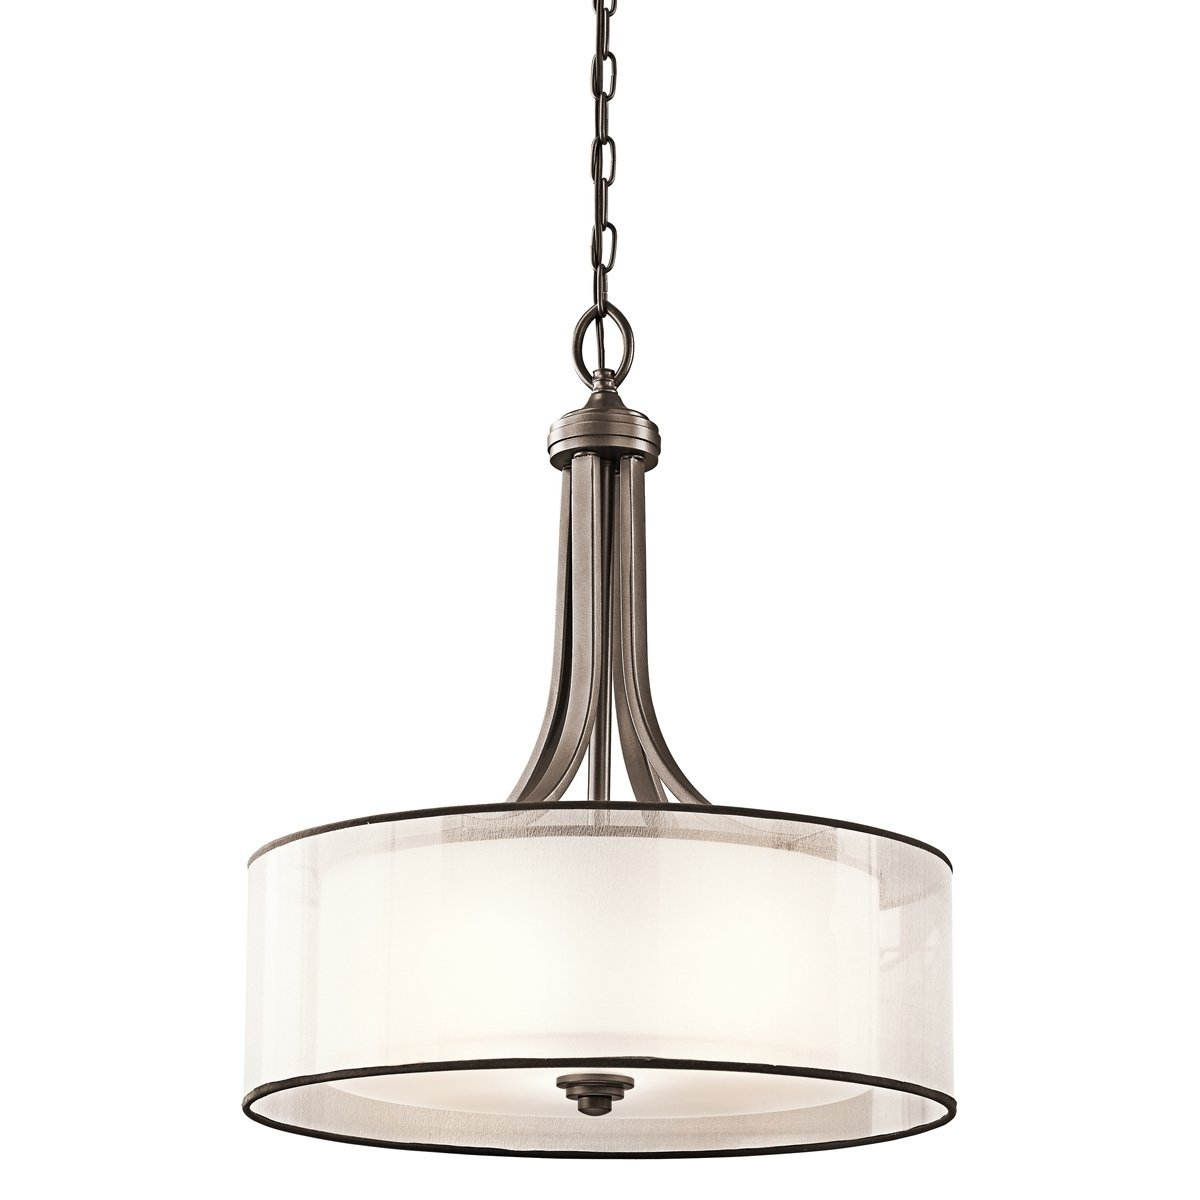 Kichler 42385Miz Four Light Pendant – Ceiling Pendant Fixtures Pertaining To Most Current Inverted Pendant Chandeliers (View 9 of 15)